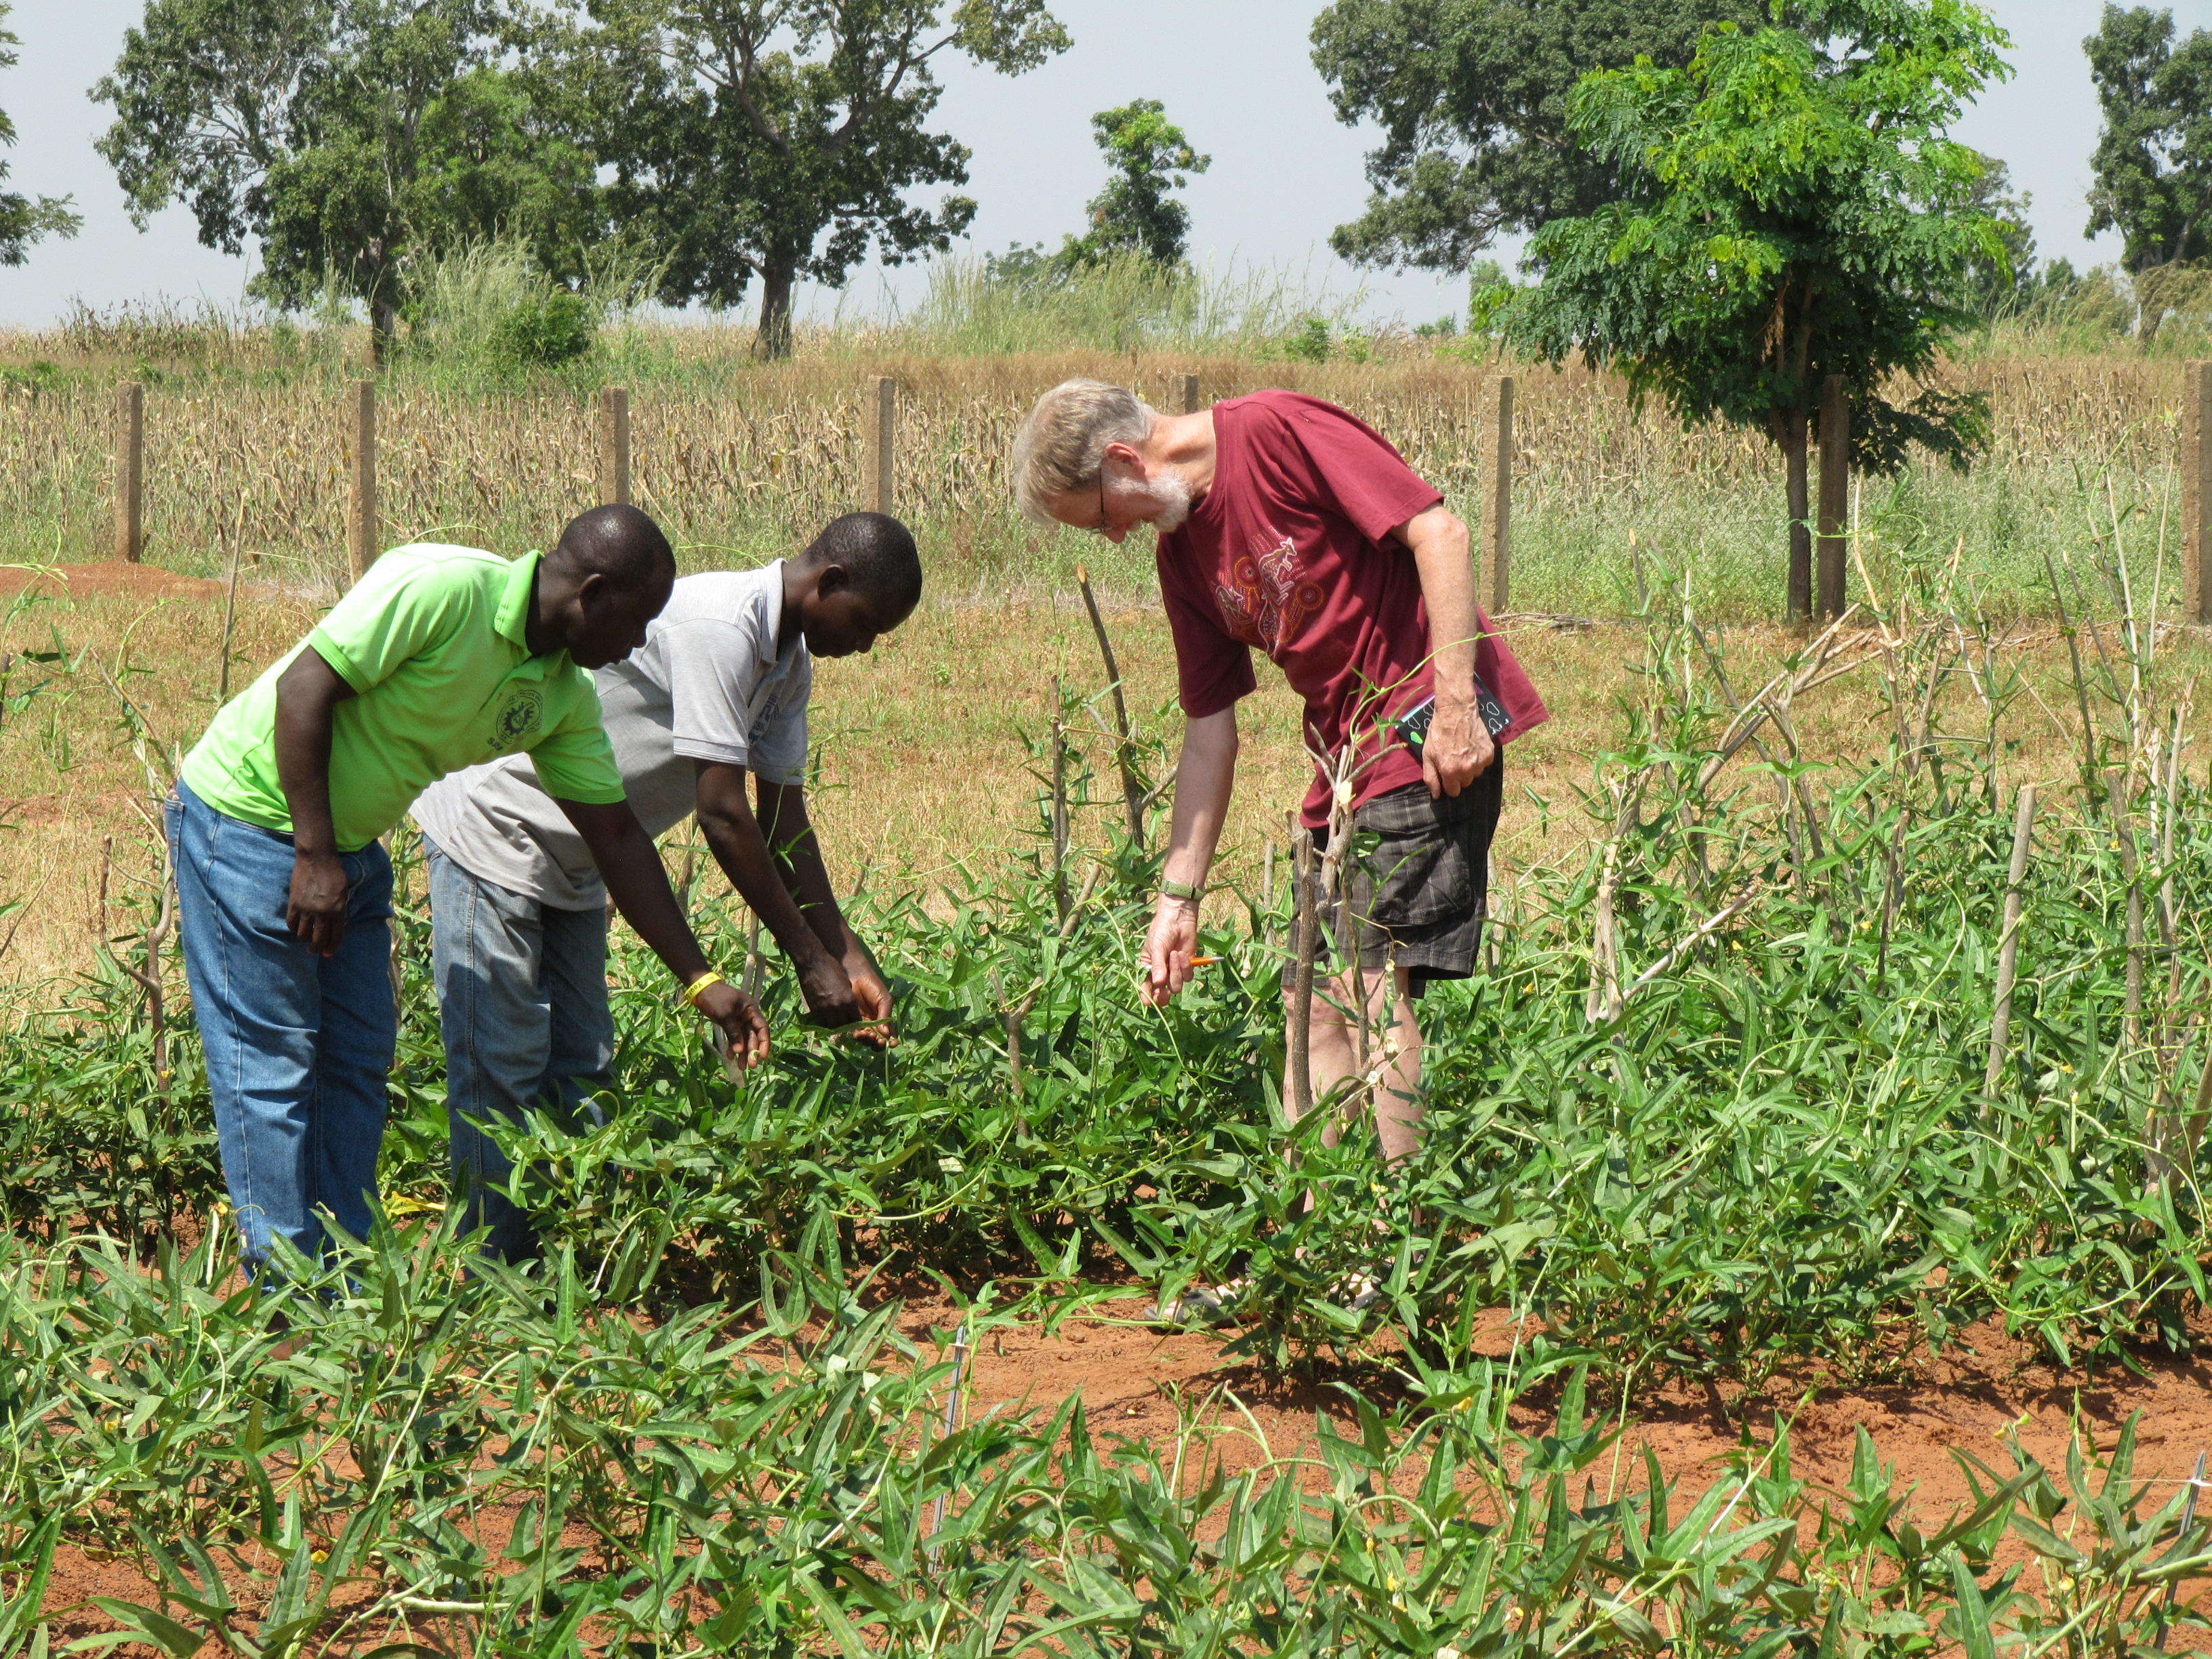 Dr TJ Higgins and two African colleagues inspecting cowpeas in a field test in Ghana.